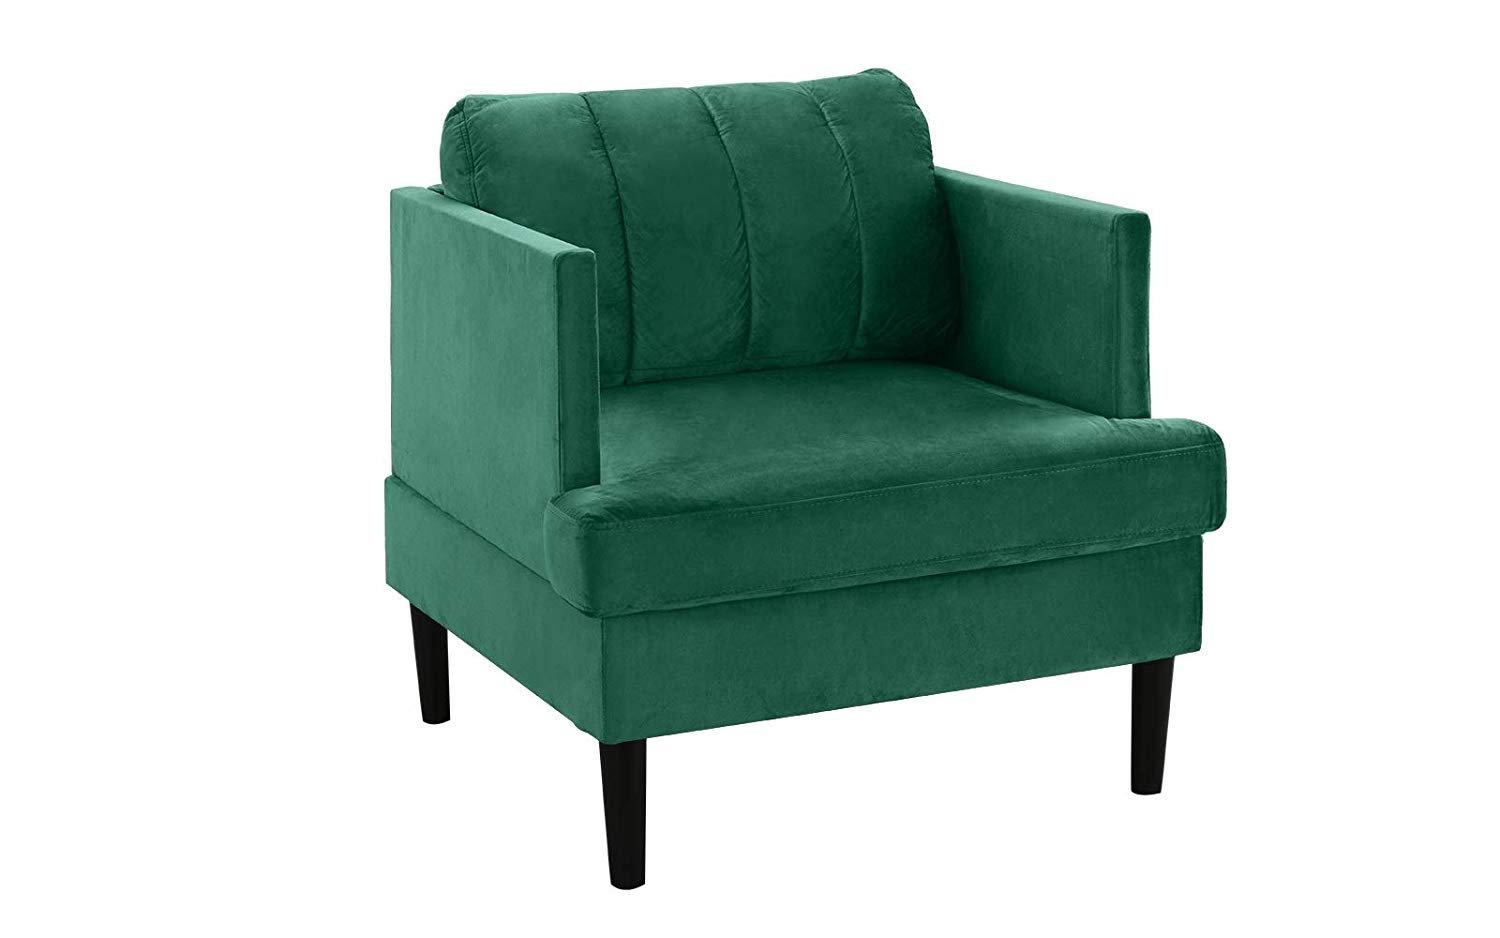 Details About Mid Century Modern High Density Velvet Armchair Living Room Accent Chair Green